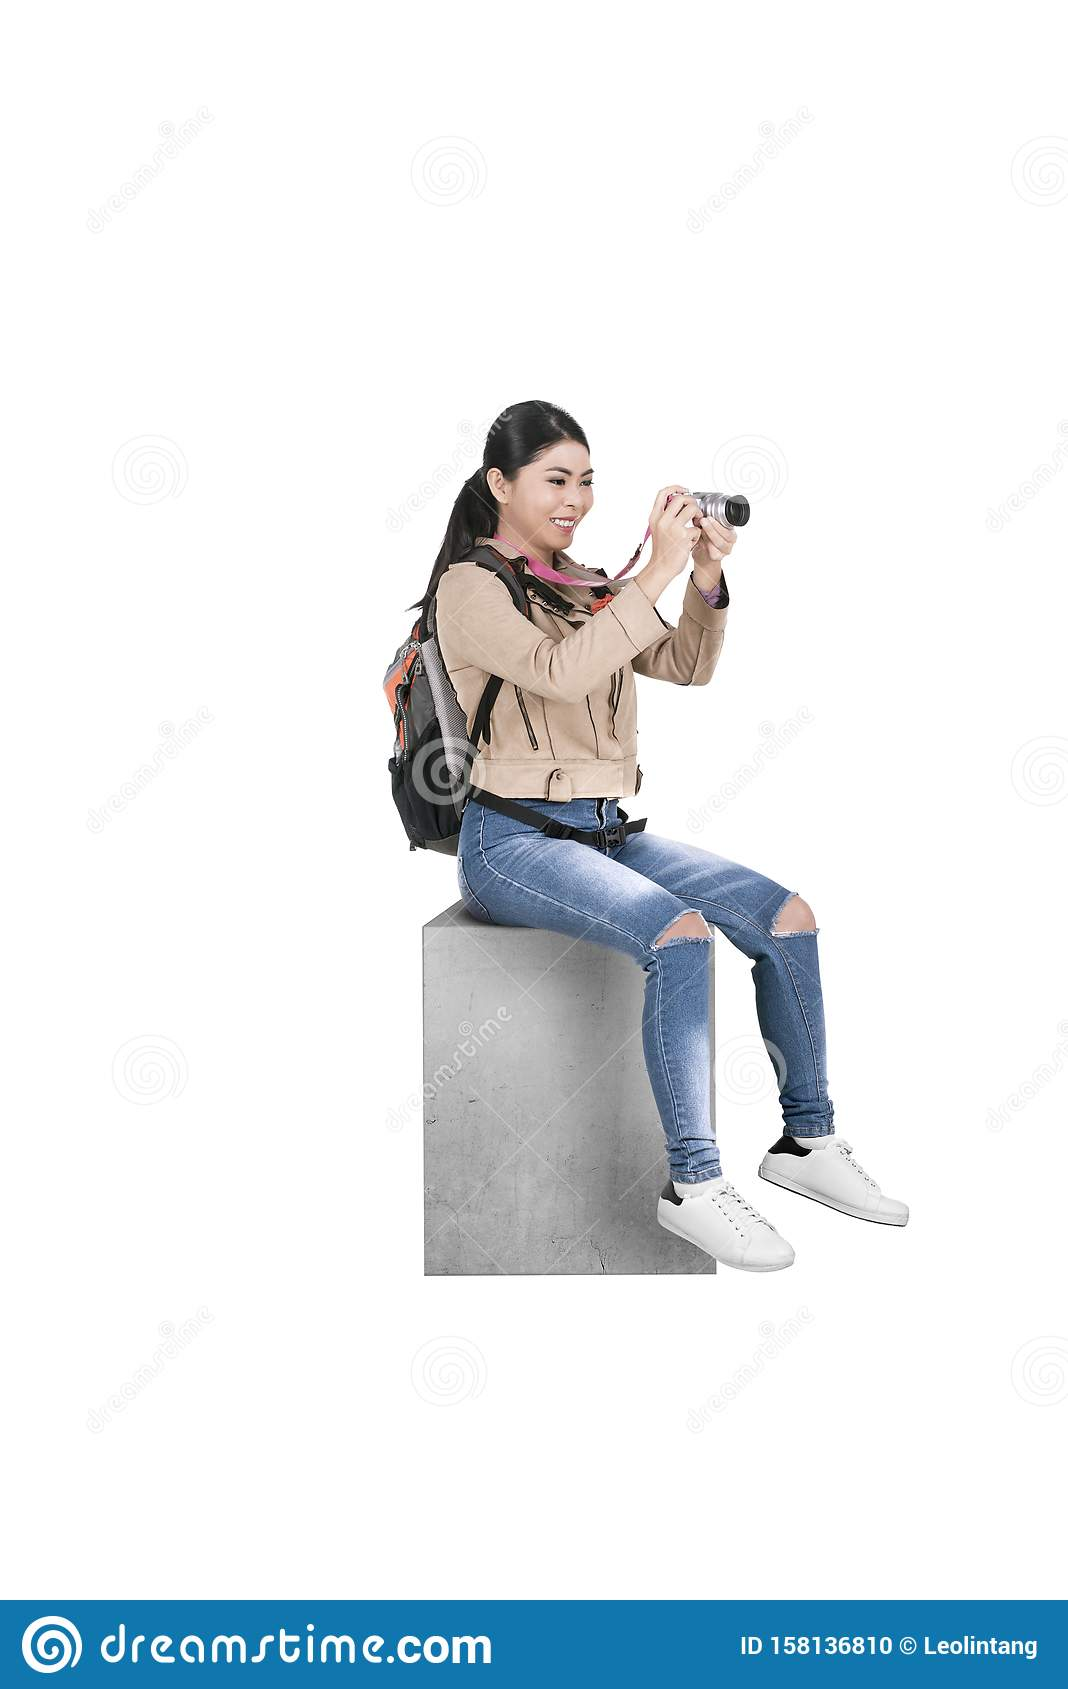 Asian woman with a backpack sitting and holding a camera to take pictures